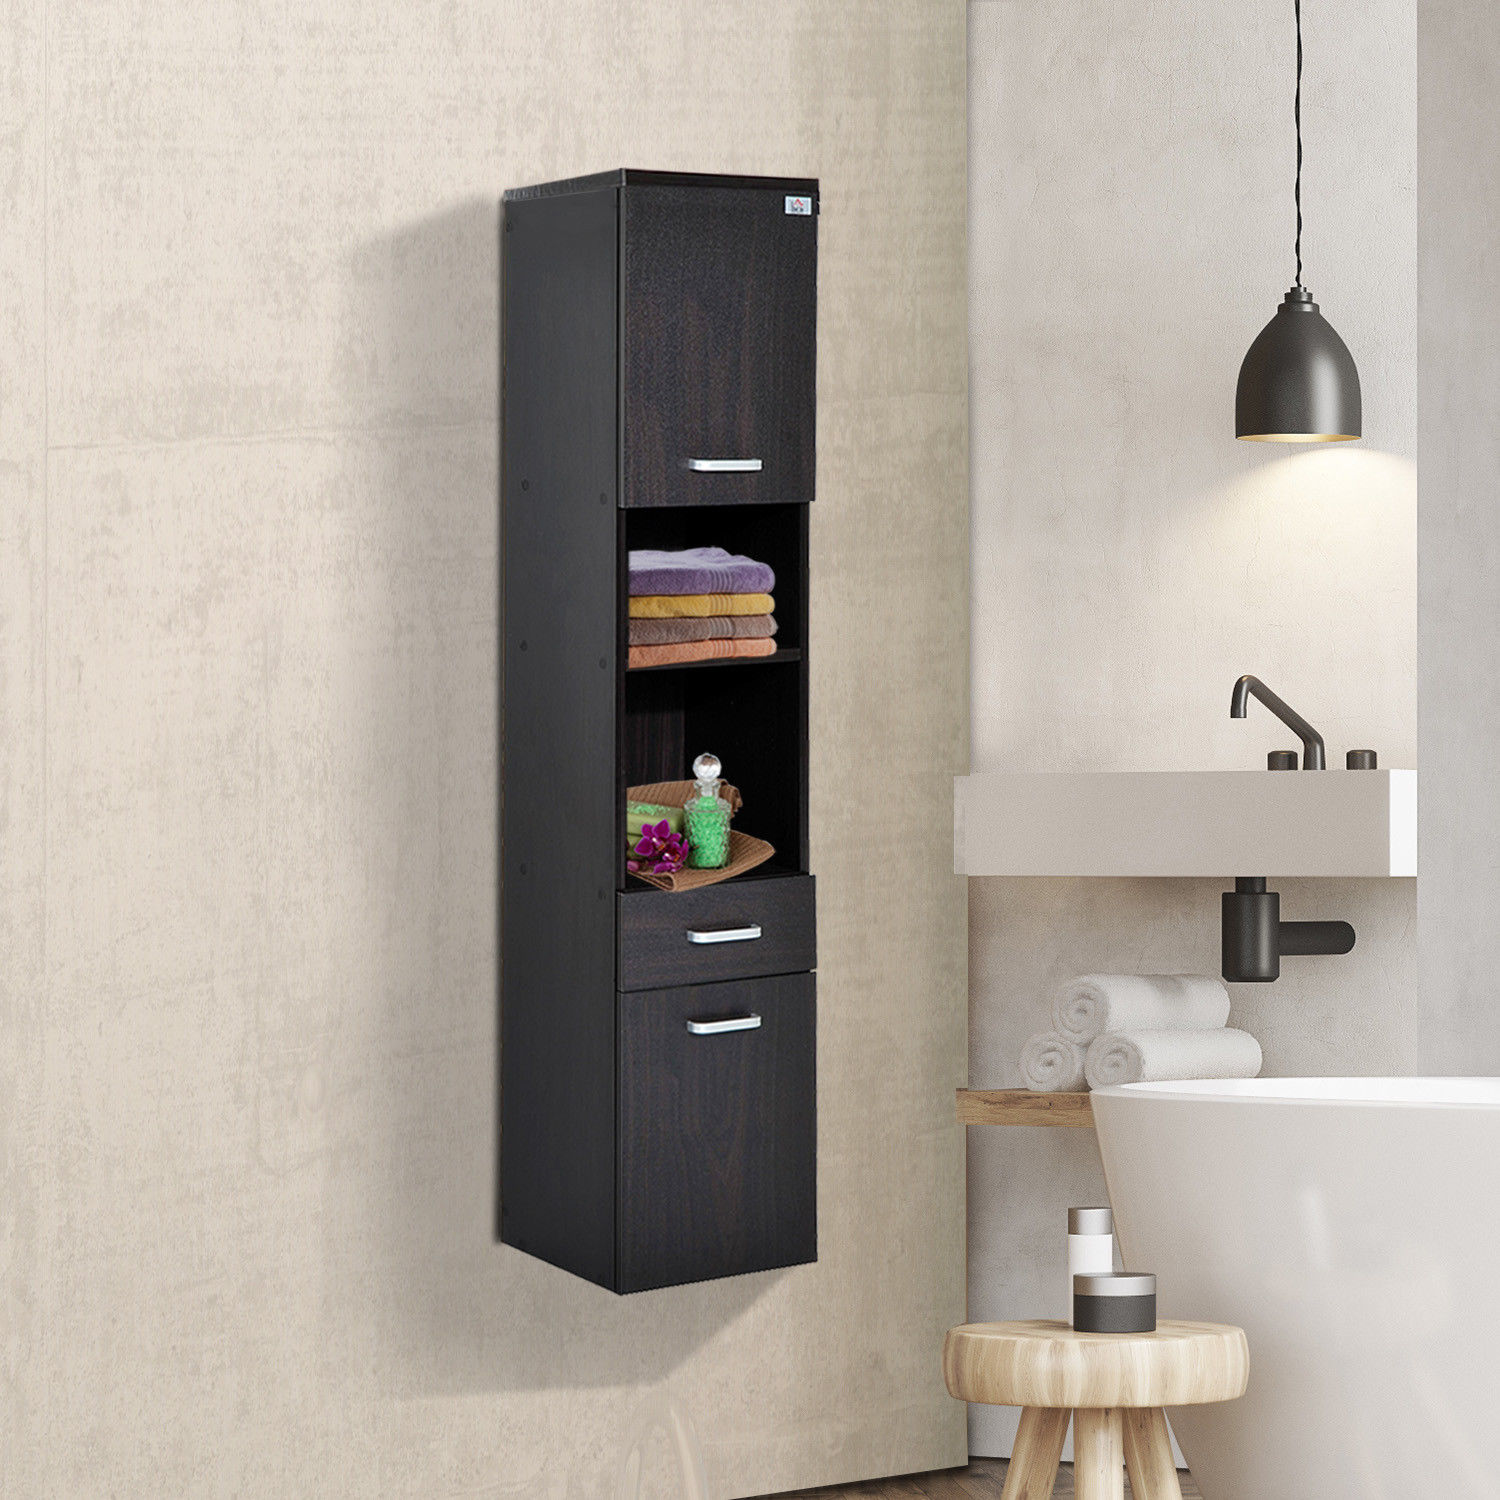 "53"" Tall Modern Wall Mounted Bathroom Cabinet Storage ..."